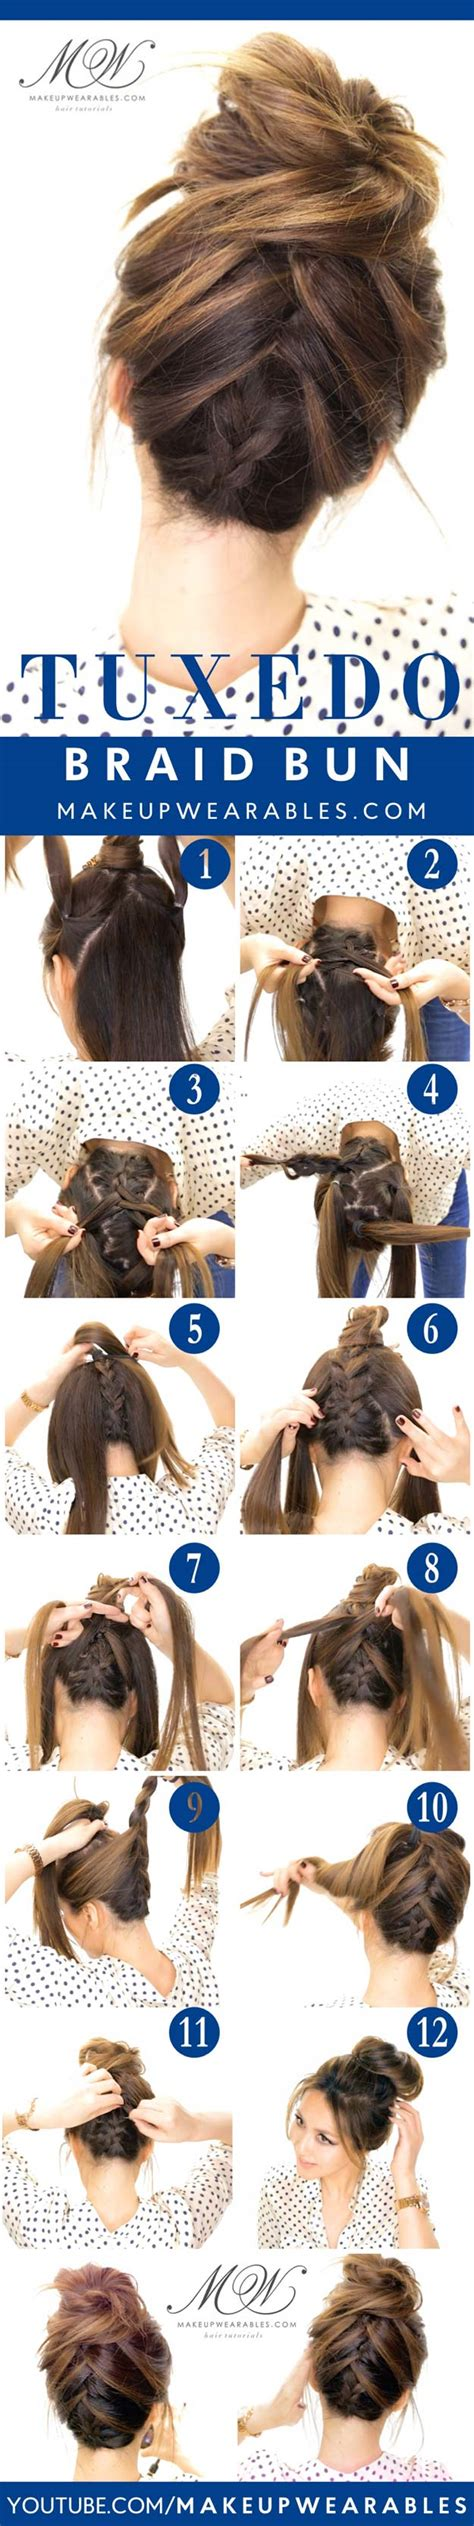 Hairstyles For Hair Step By Step For Braids by 40 Of The Best Hair Braiding Tutorials Diy Projects